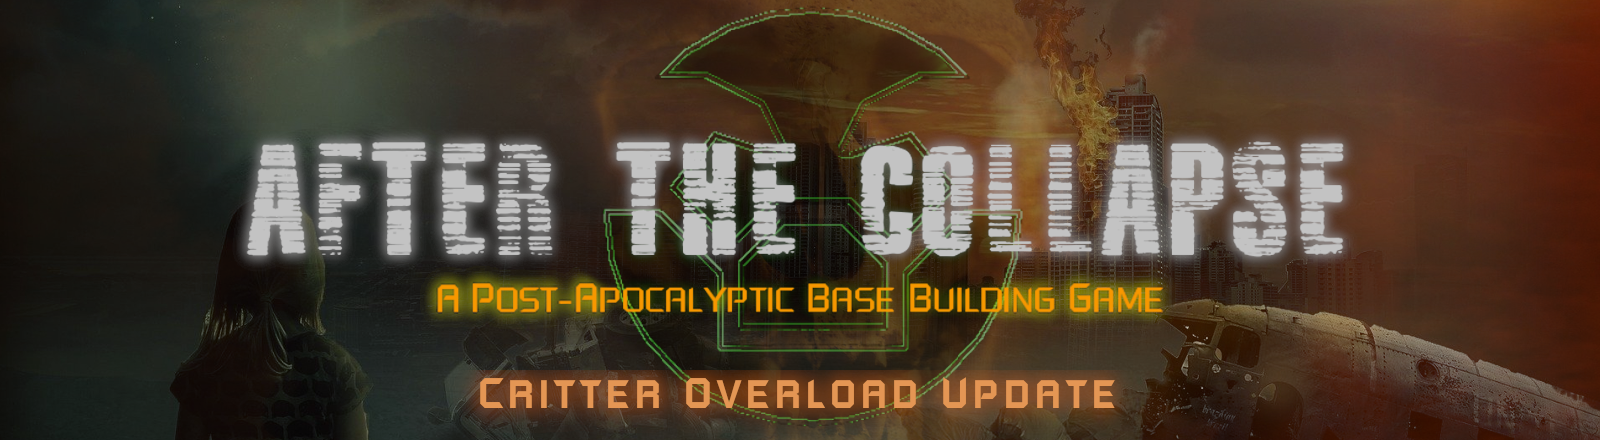 After The Collapse 0.7.3: Critter Overload